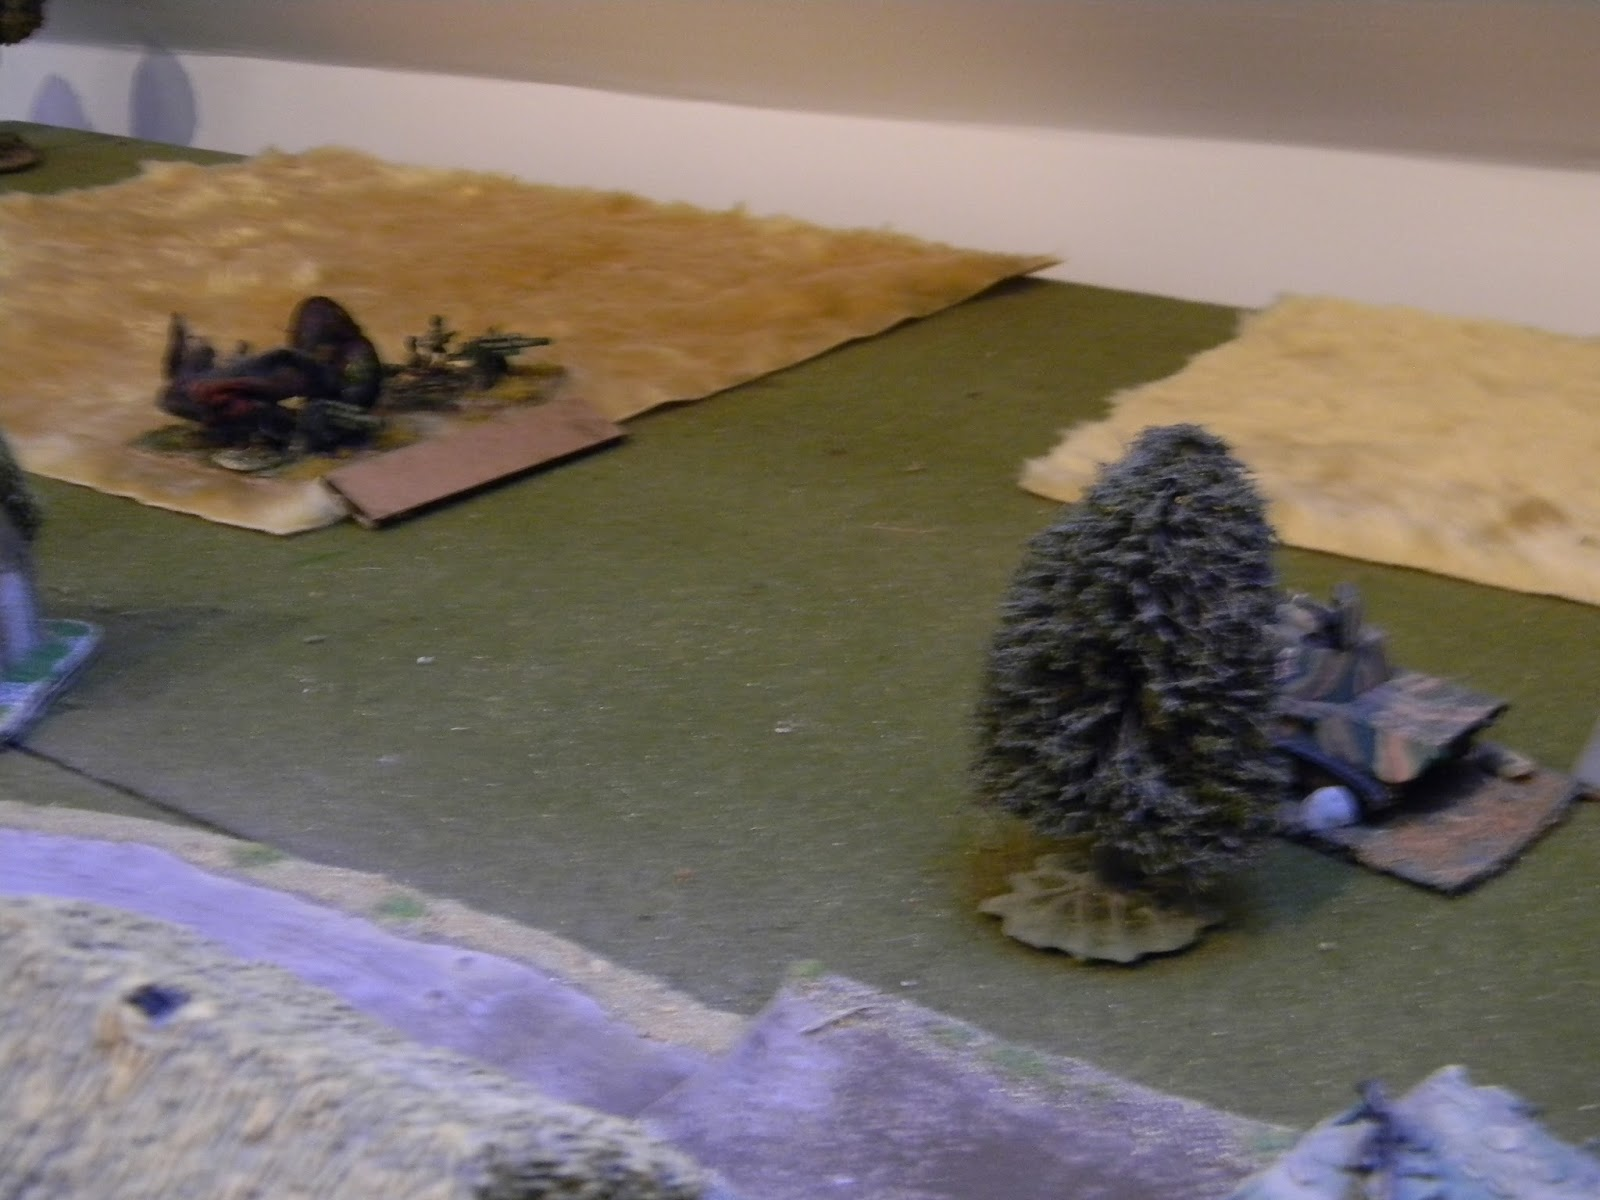 The German tank commander has dashed forwards to engage the remaining enemy anti-tank gun.